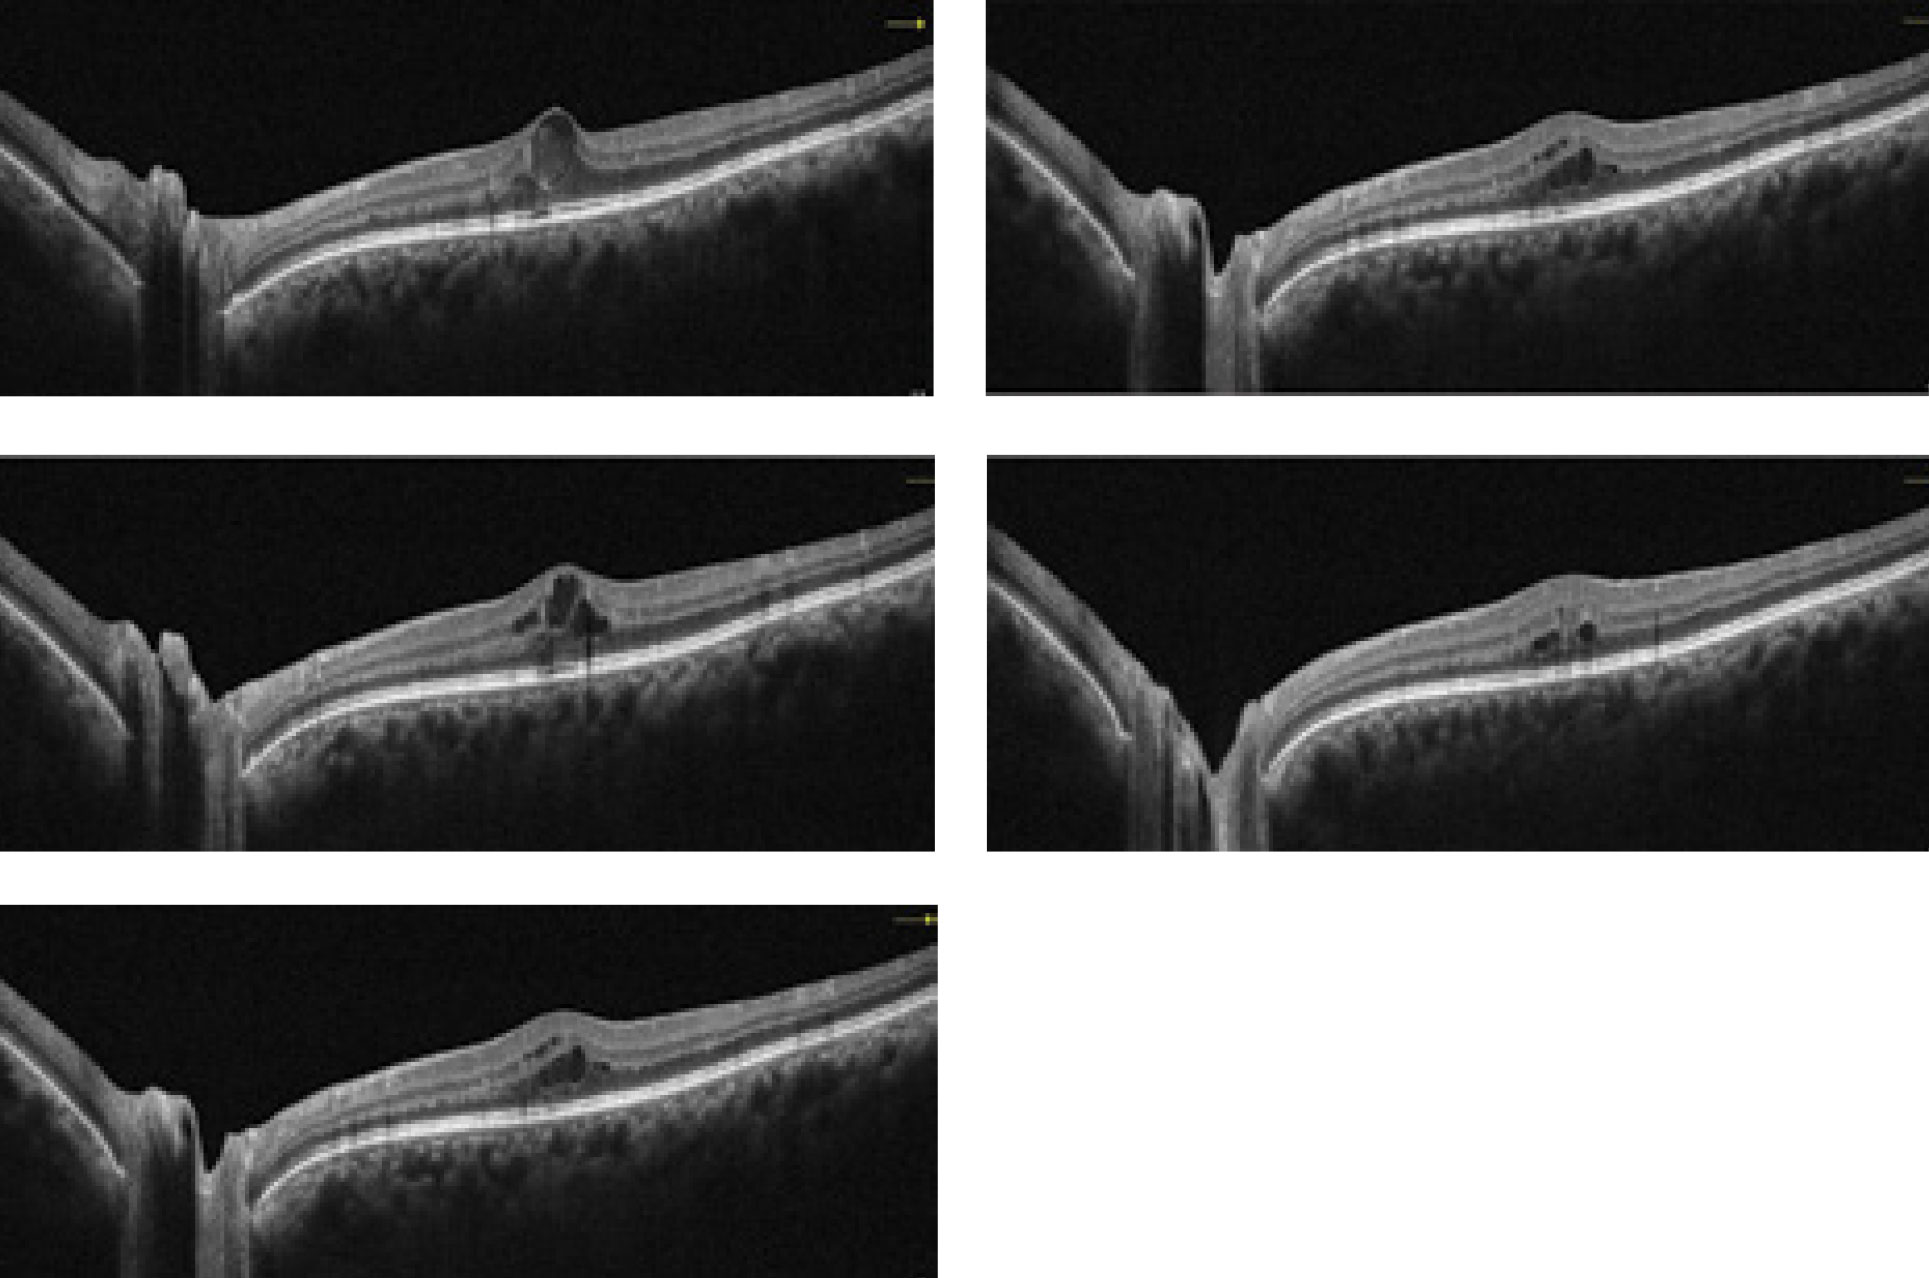 This collection of OCT images exemplify how the technology is able to portray a diabetic retinopathy patient through the course of several visits.